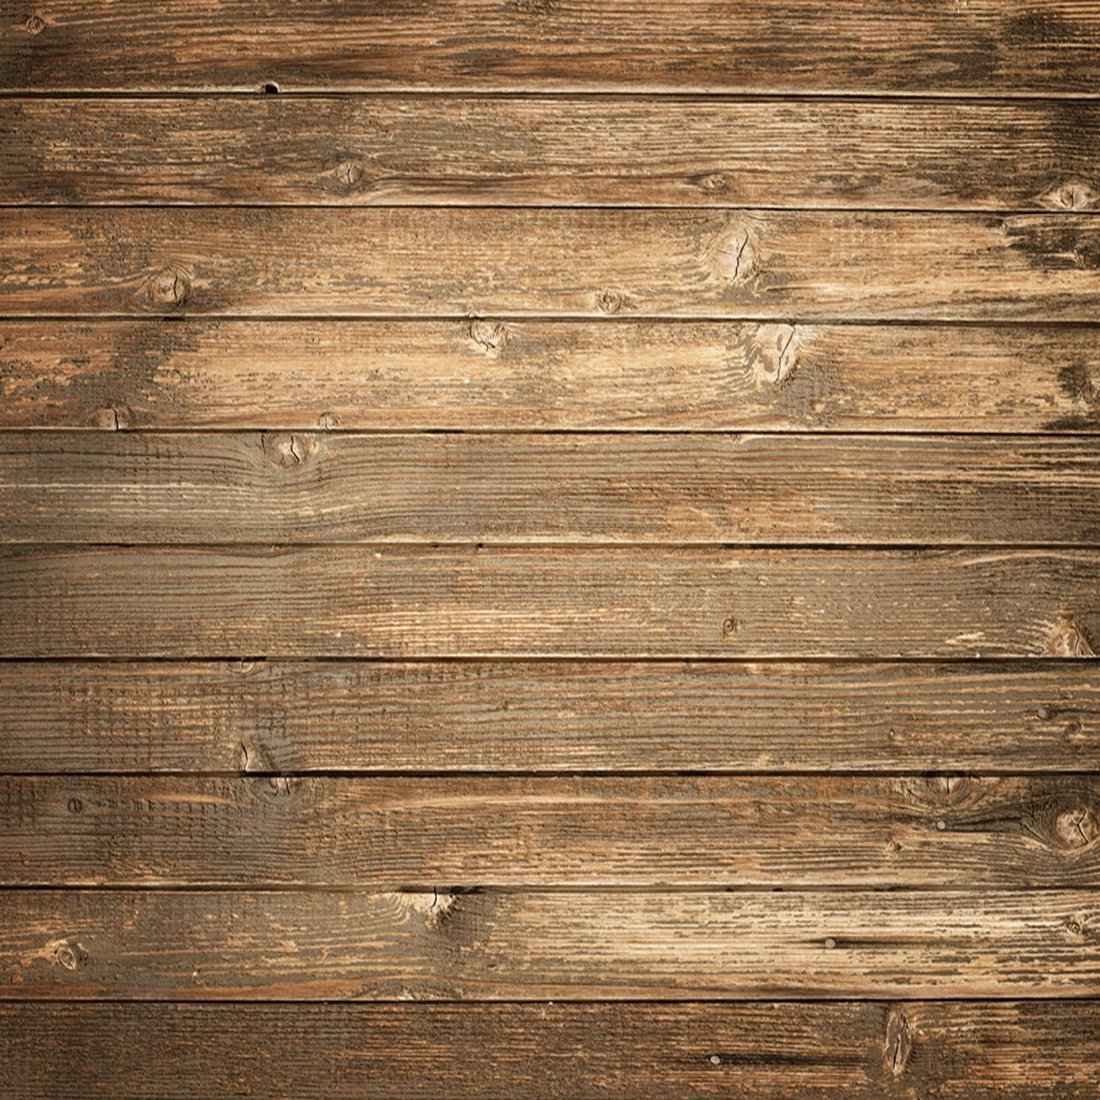 Seamlss Backdrop Brown Wood Photo Backgrounds Wood Wall No Wrinkle Photography Backdrops (10x10ft) by Kate (Image #1)